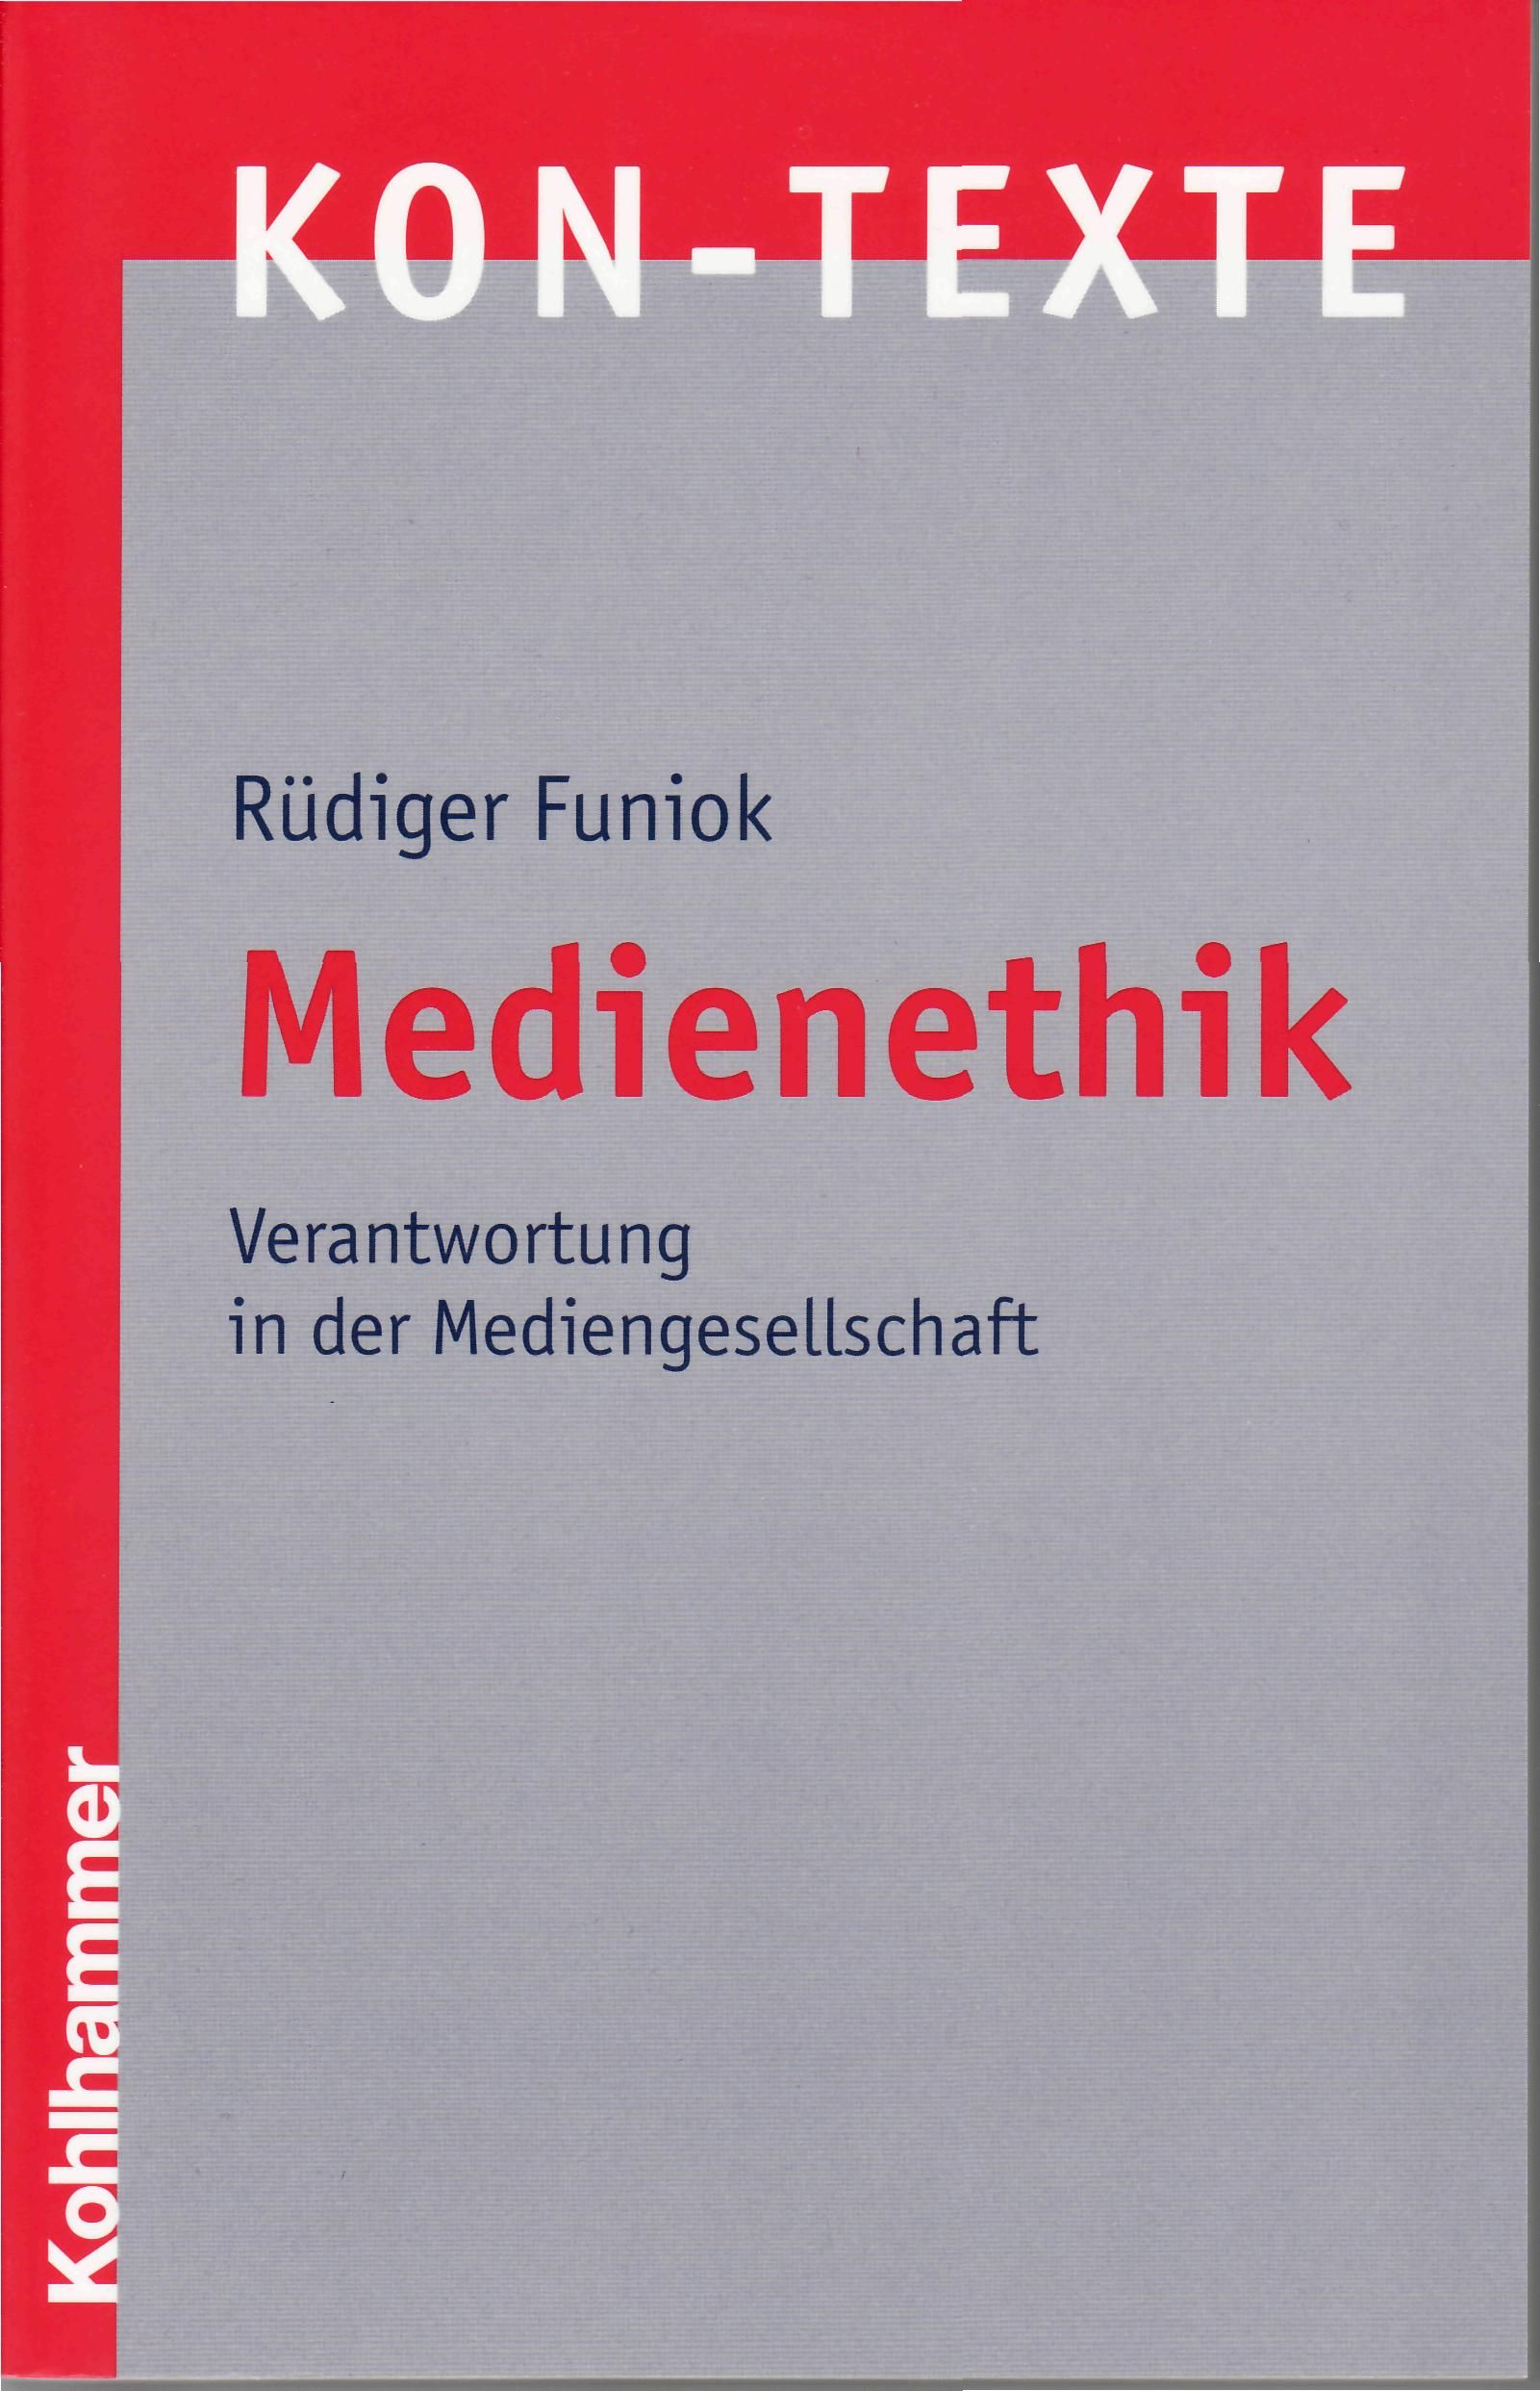 Cover Medienethik Funiok